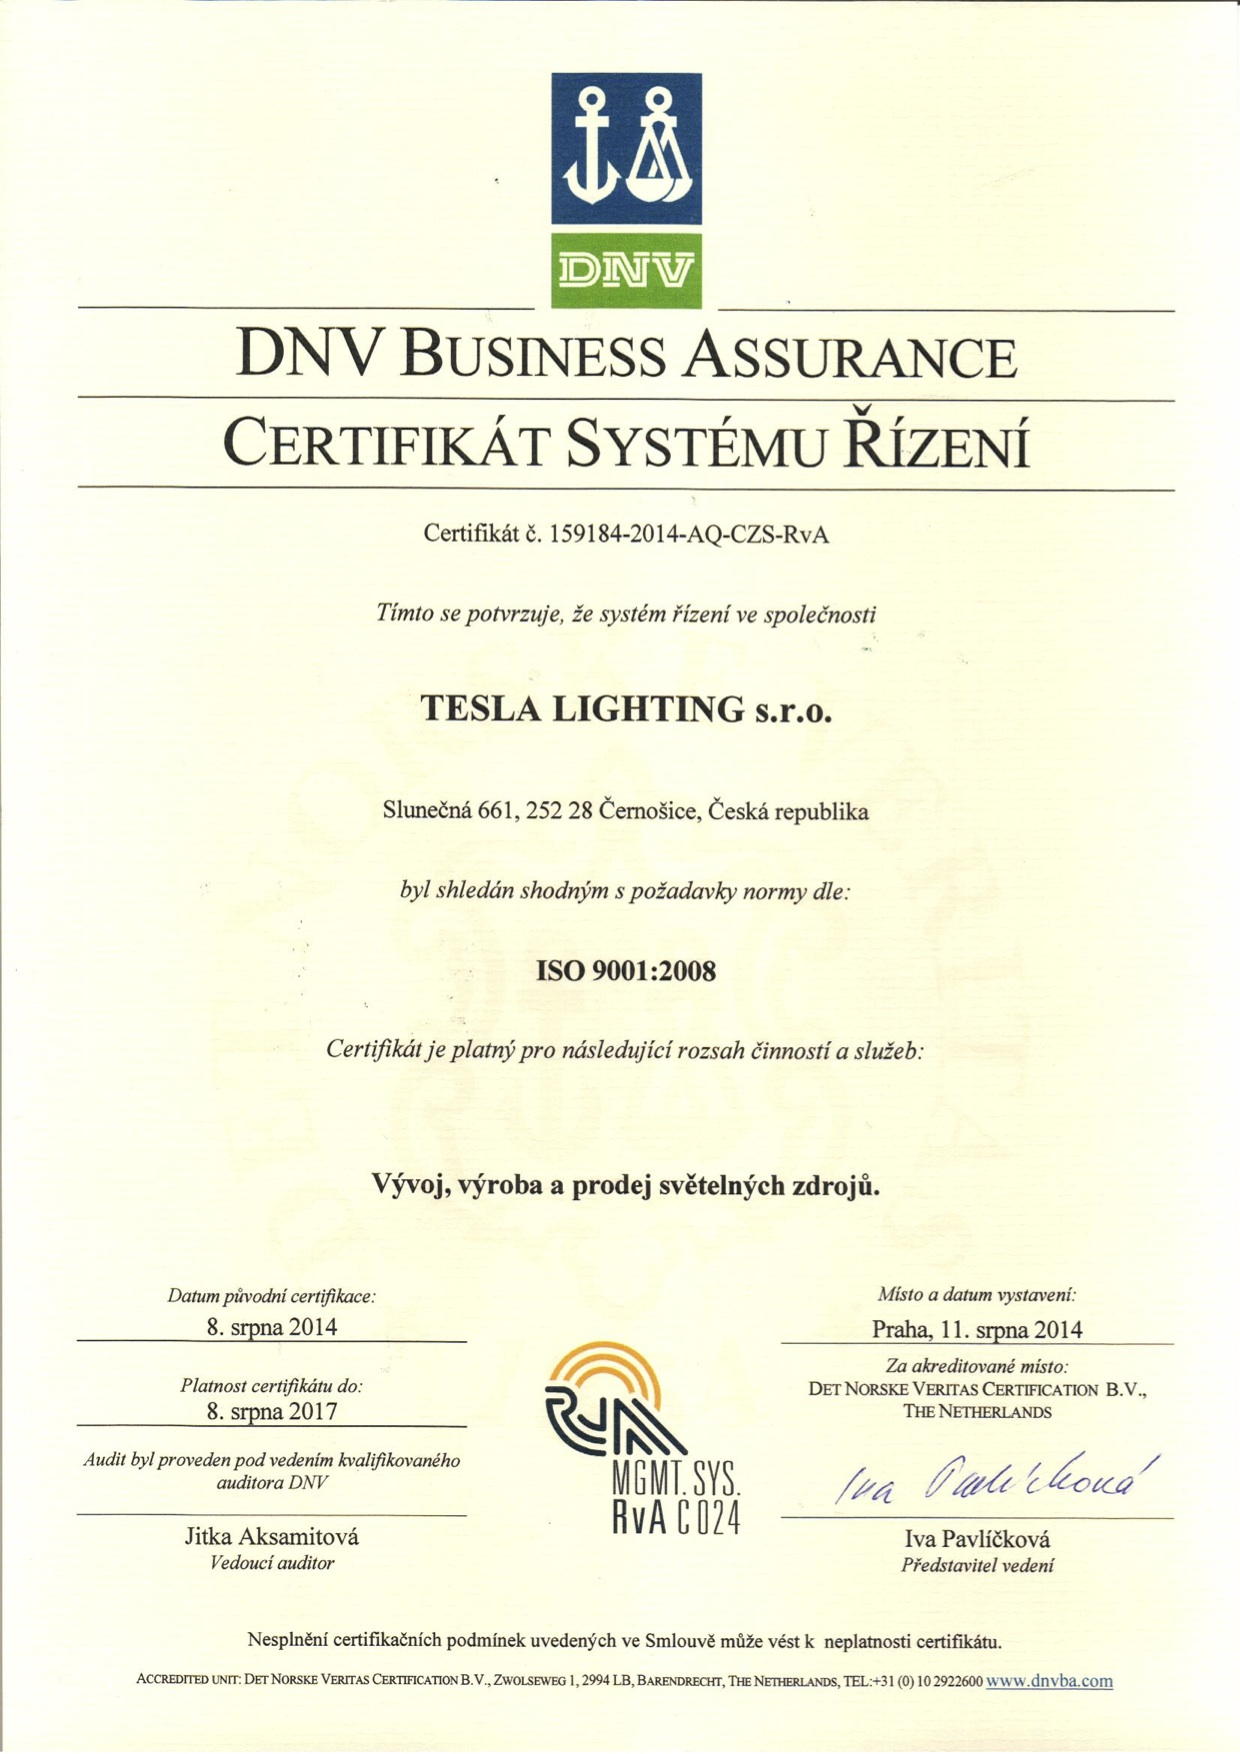 Management System Certificate ISO 9001:2008